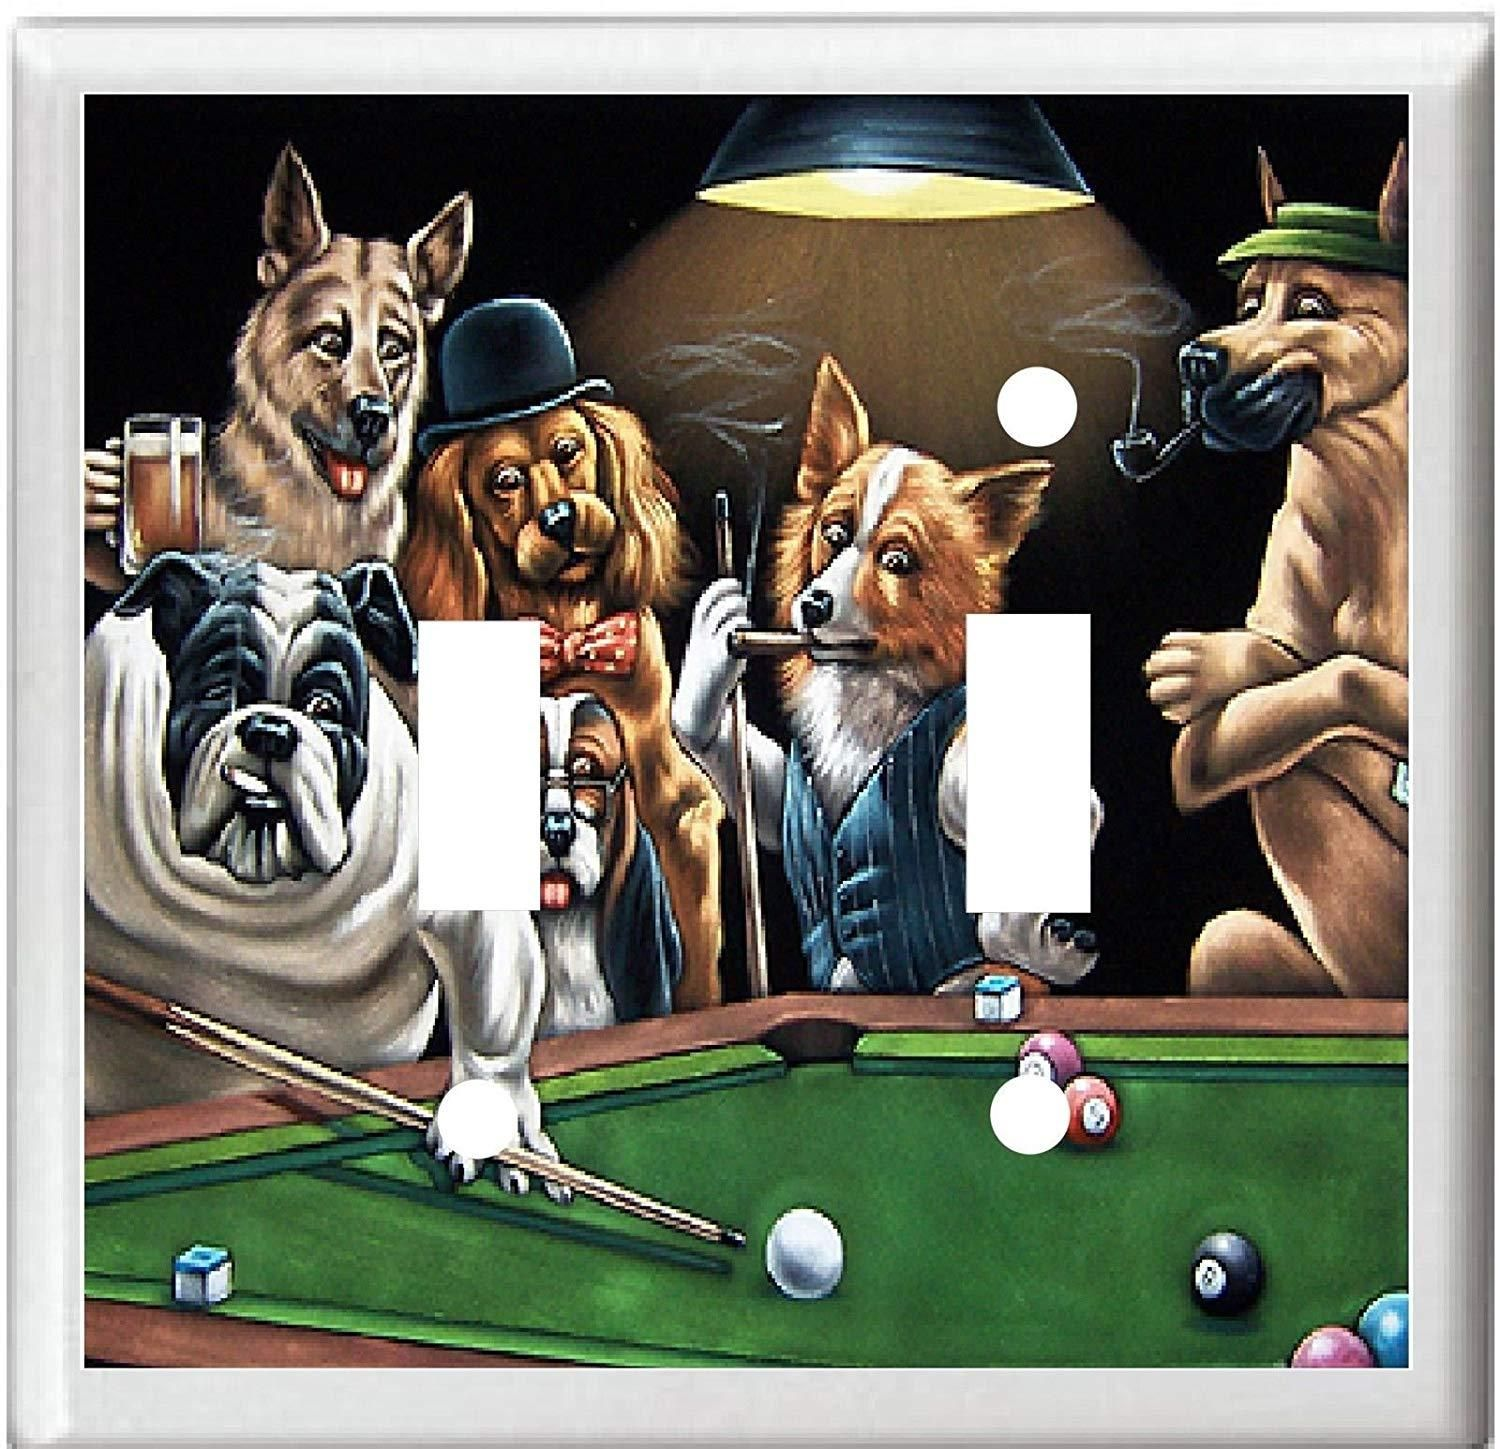 Billard Oldenburg Bb Dogs Playing Pool Billiards Game Room Decor Light Switch Or